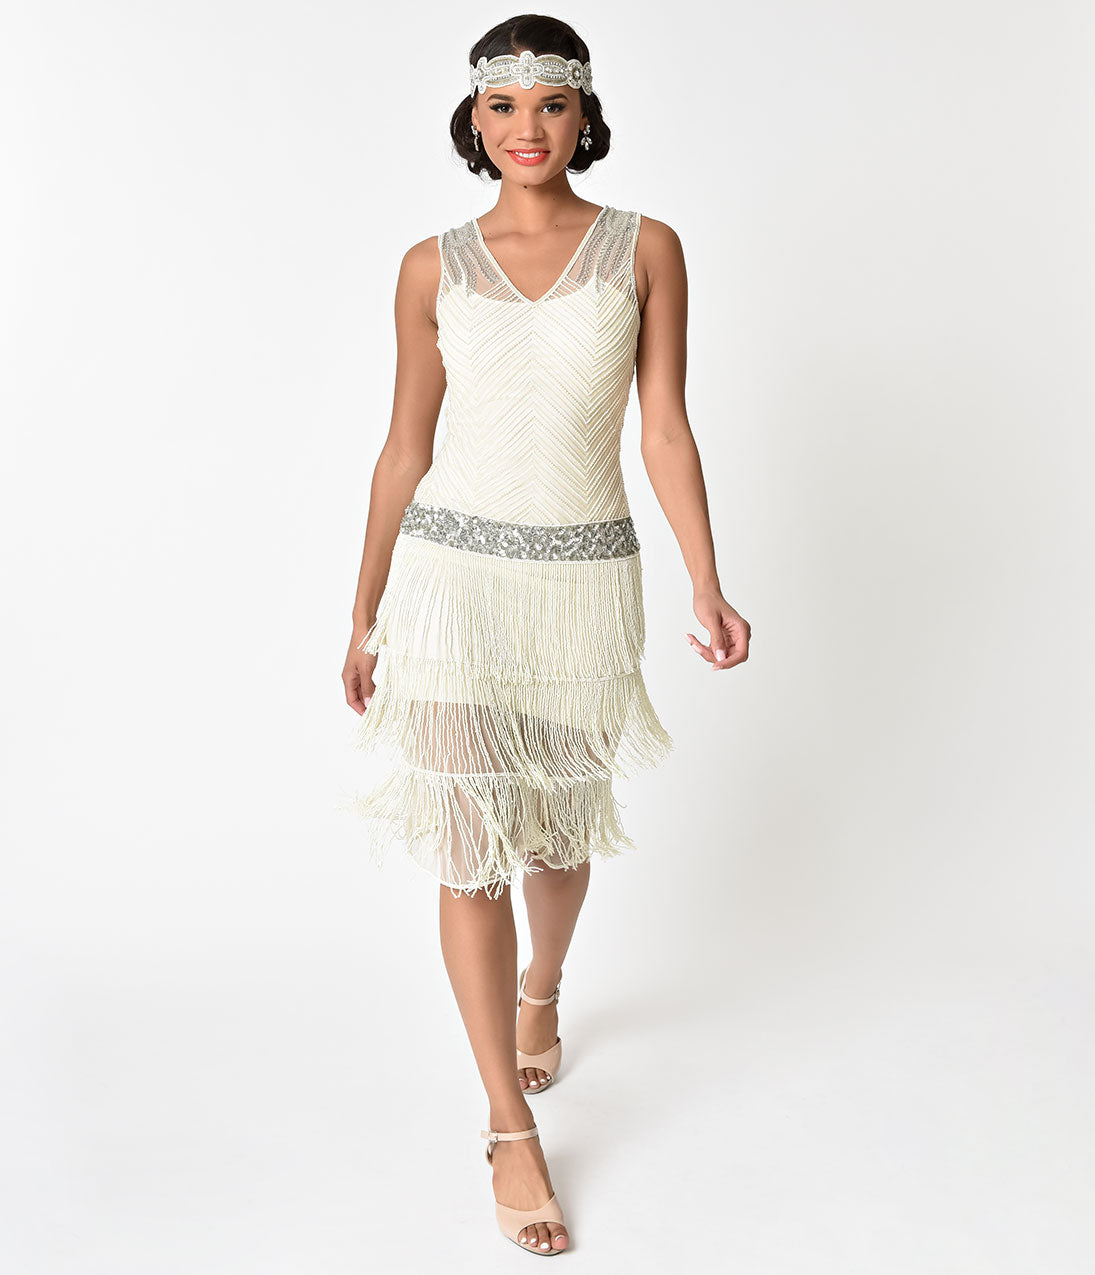 Vintage Inspired Wedding Dress | Vintage Style Wedding Dresses Unique Vintage 1920S Ivory Beaded Fringe Rosedale Cocktail Dress $268.00 AT vintagedancer.com